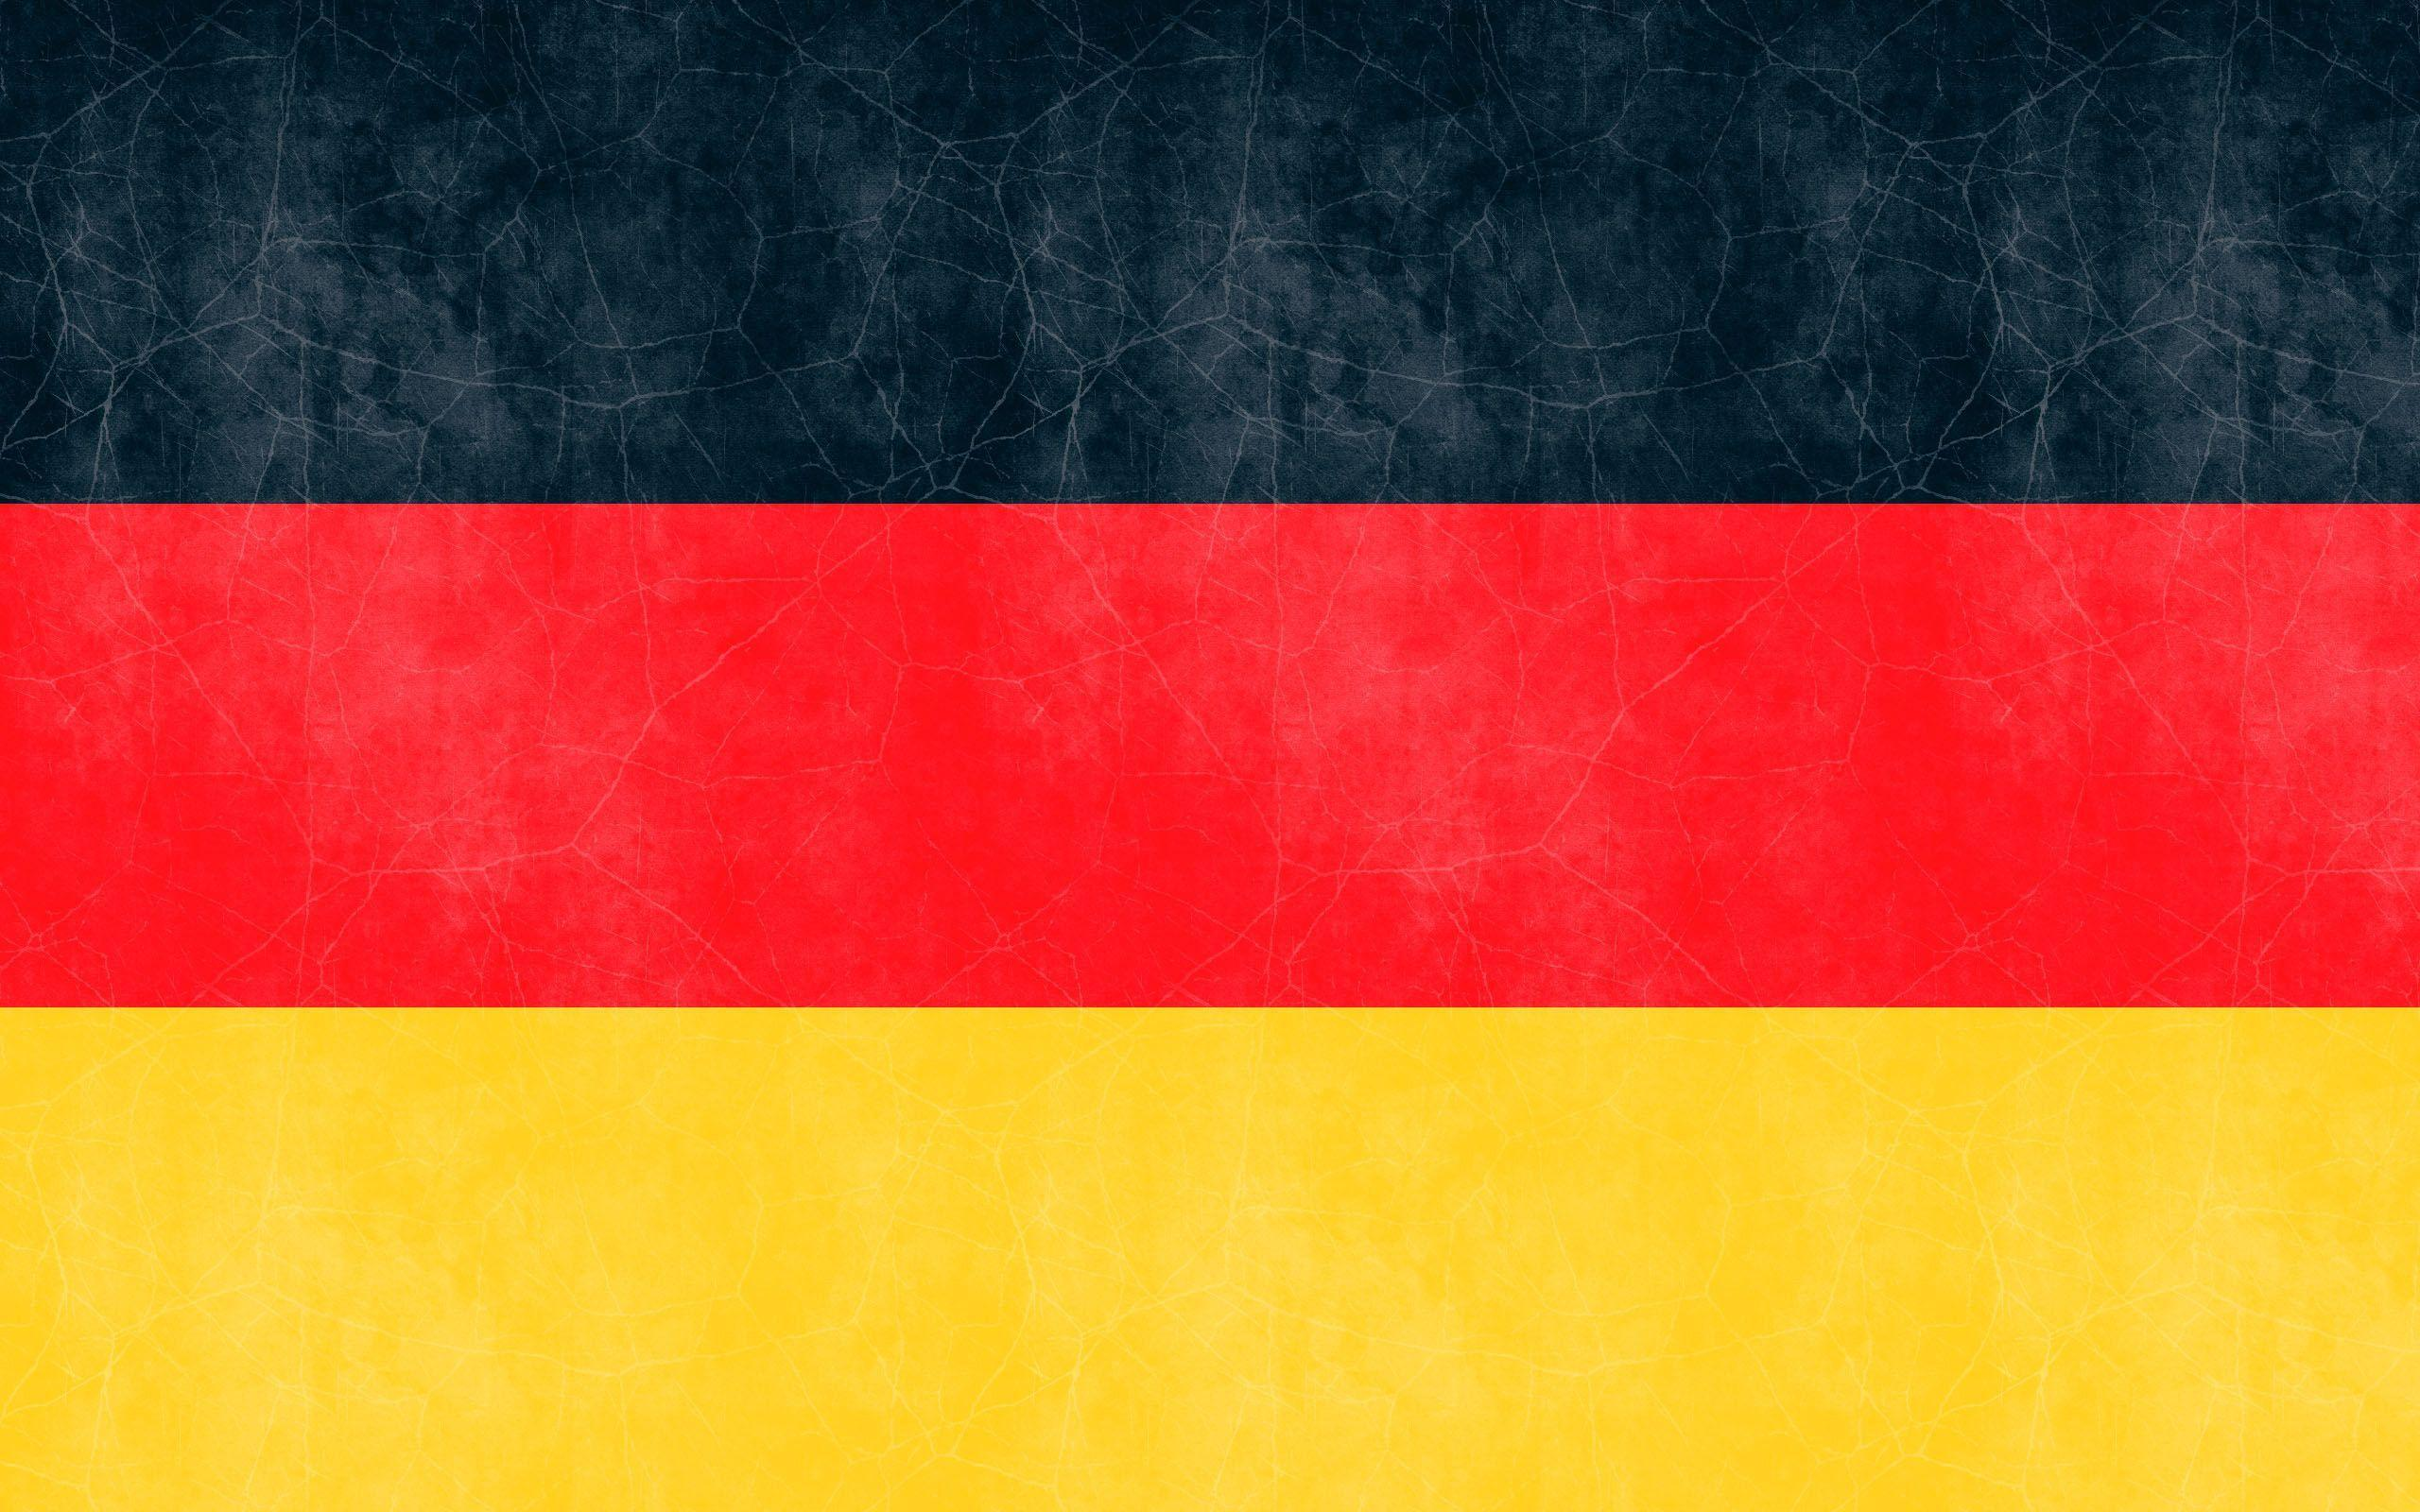 deutschland flag wallpaper - photo #6